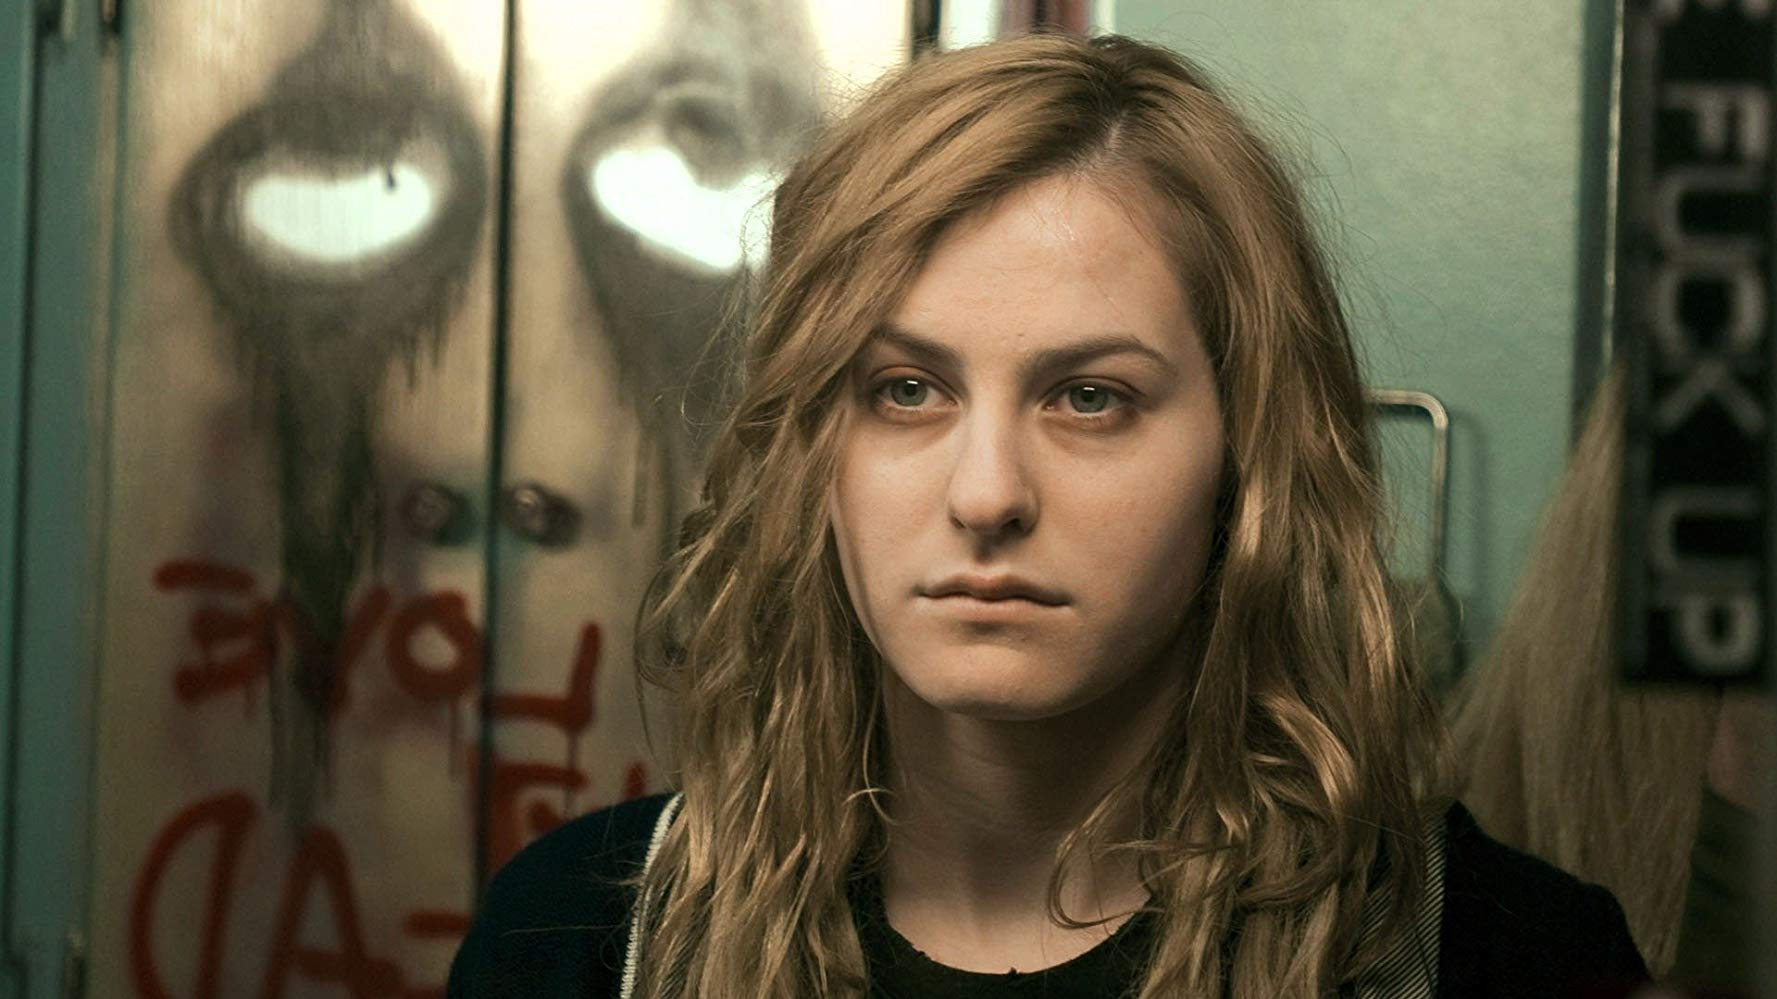 Scout Taylor-Compton as a now traumatised Laurie Strode in Halloween II (2009)